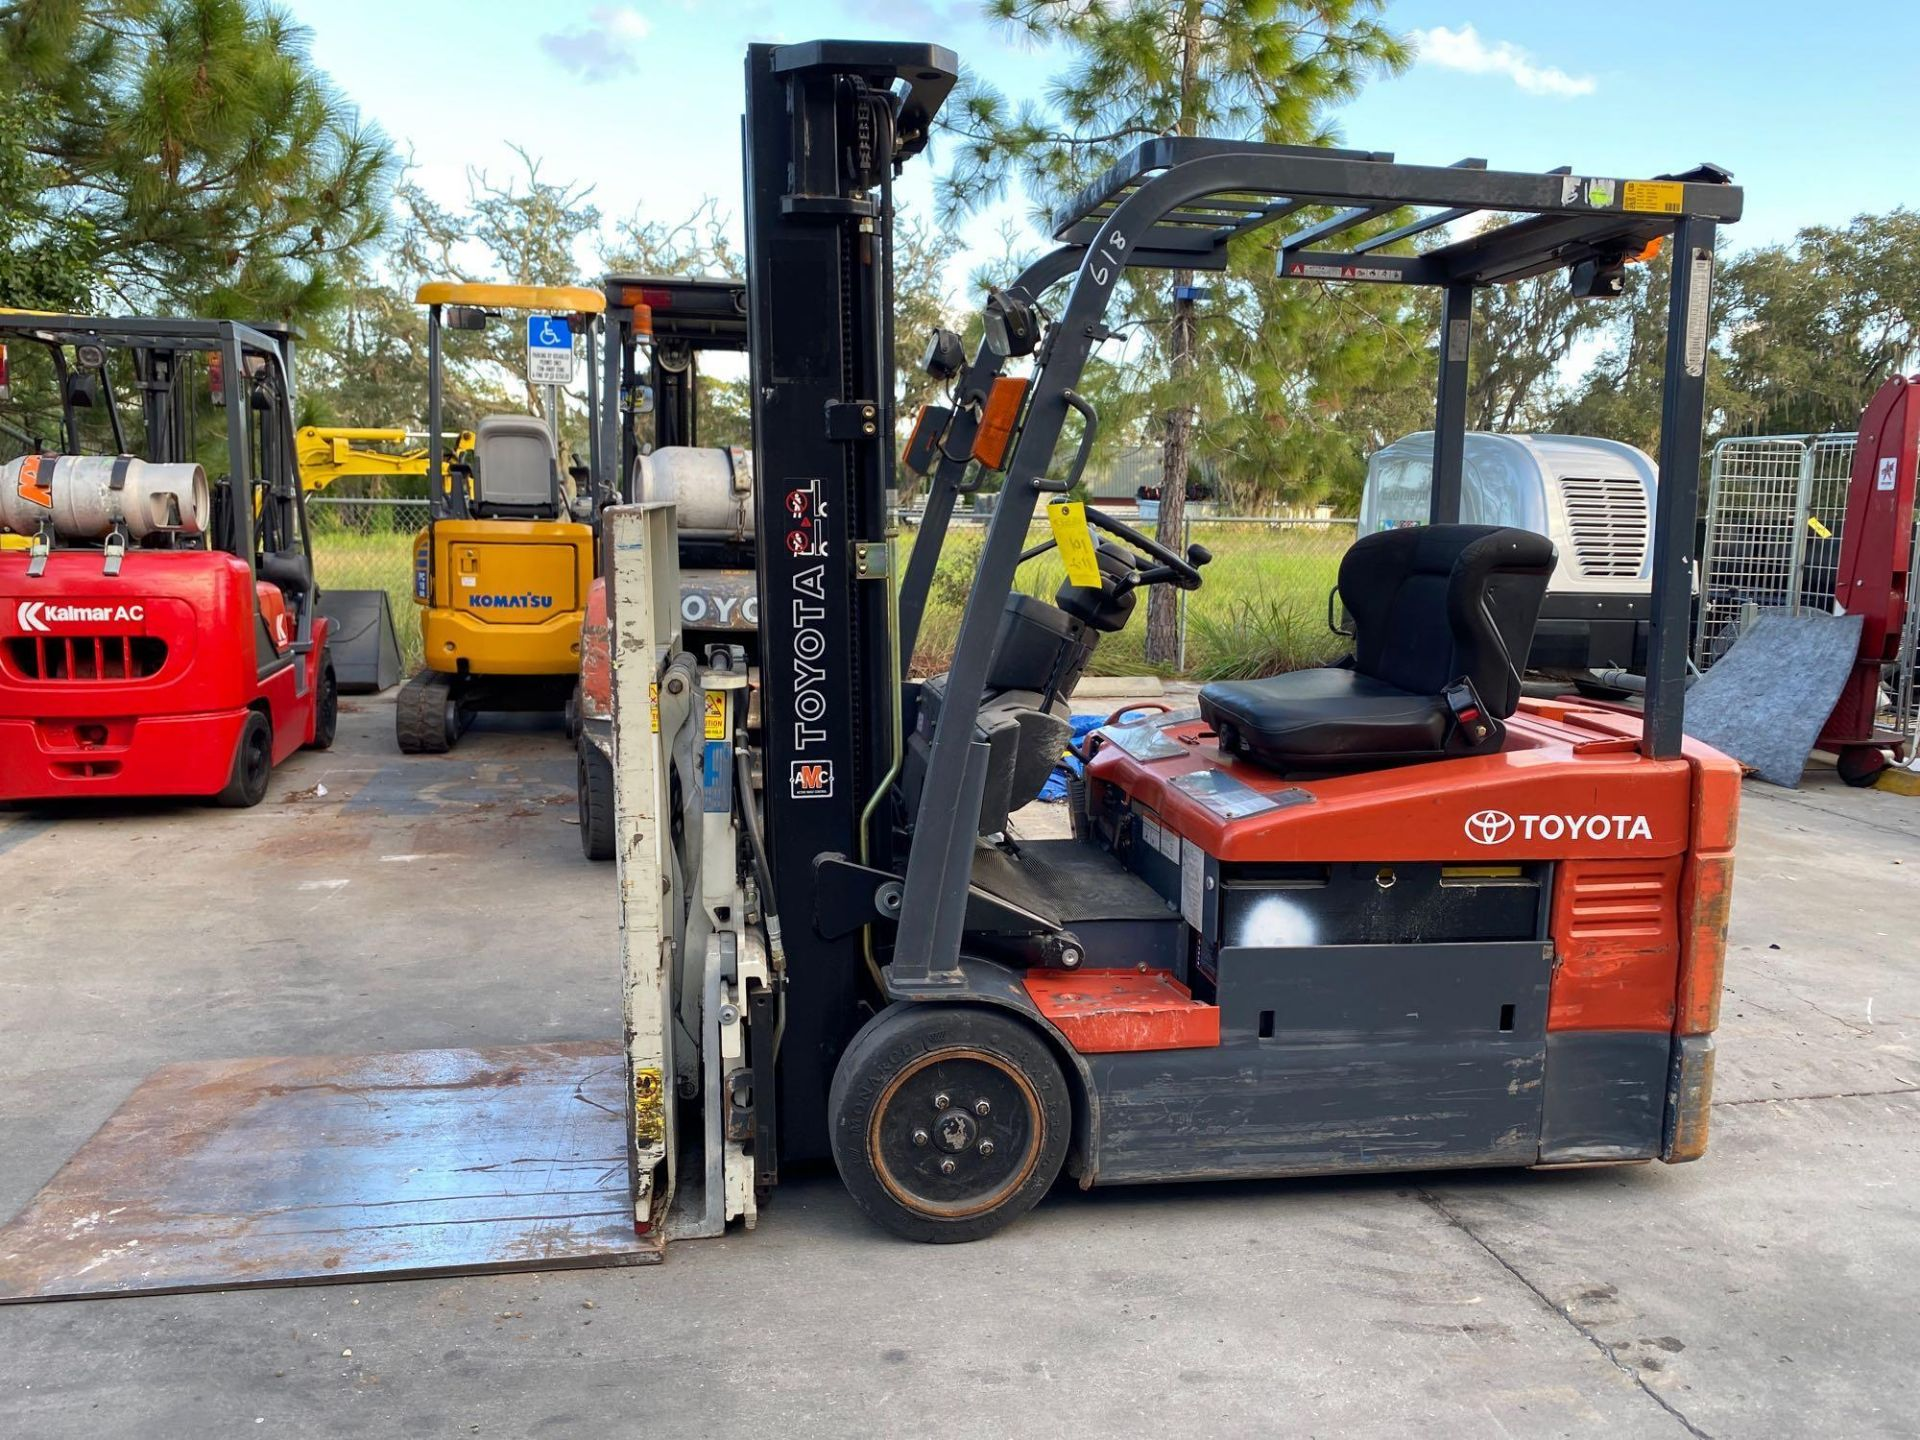 TOYOTA ELECTRIC FORKLIFT MODEL 7FBEU20, 4,000 LB CAPACITY, CASCADE PUSH/PULL ATTACHMENT, TILT, SIDE - Image 4 of 24